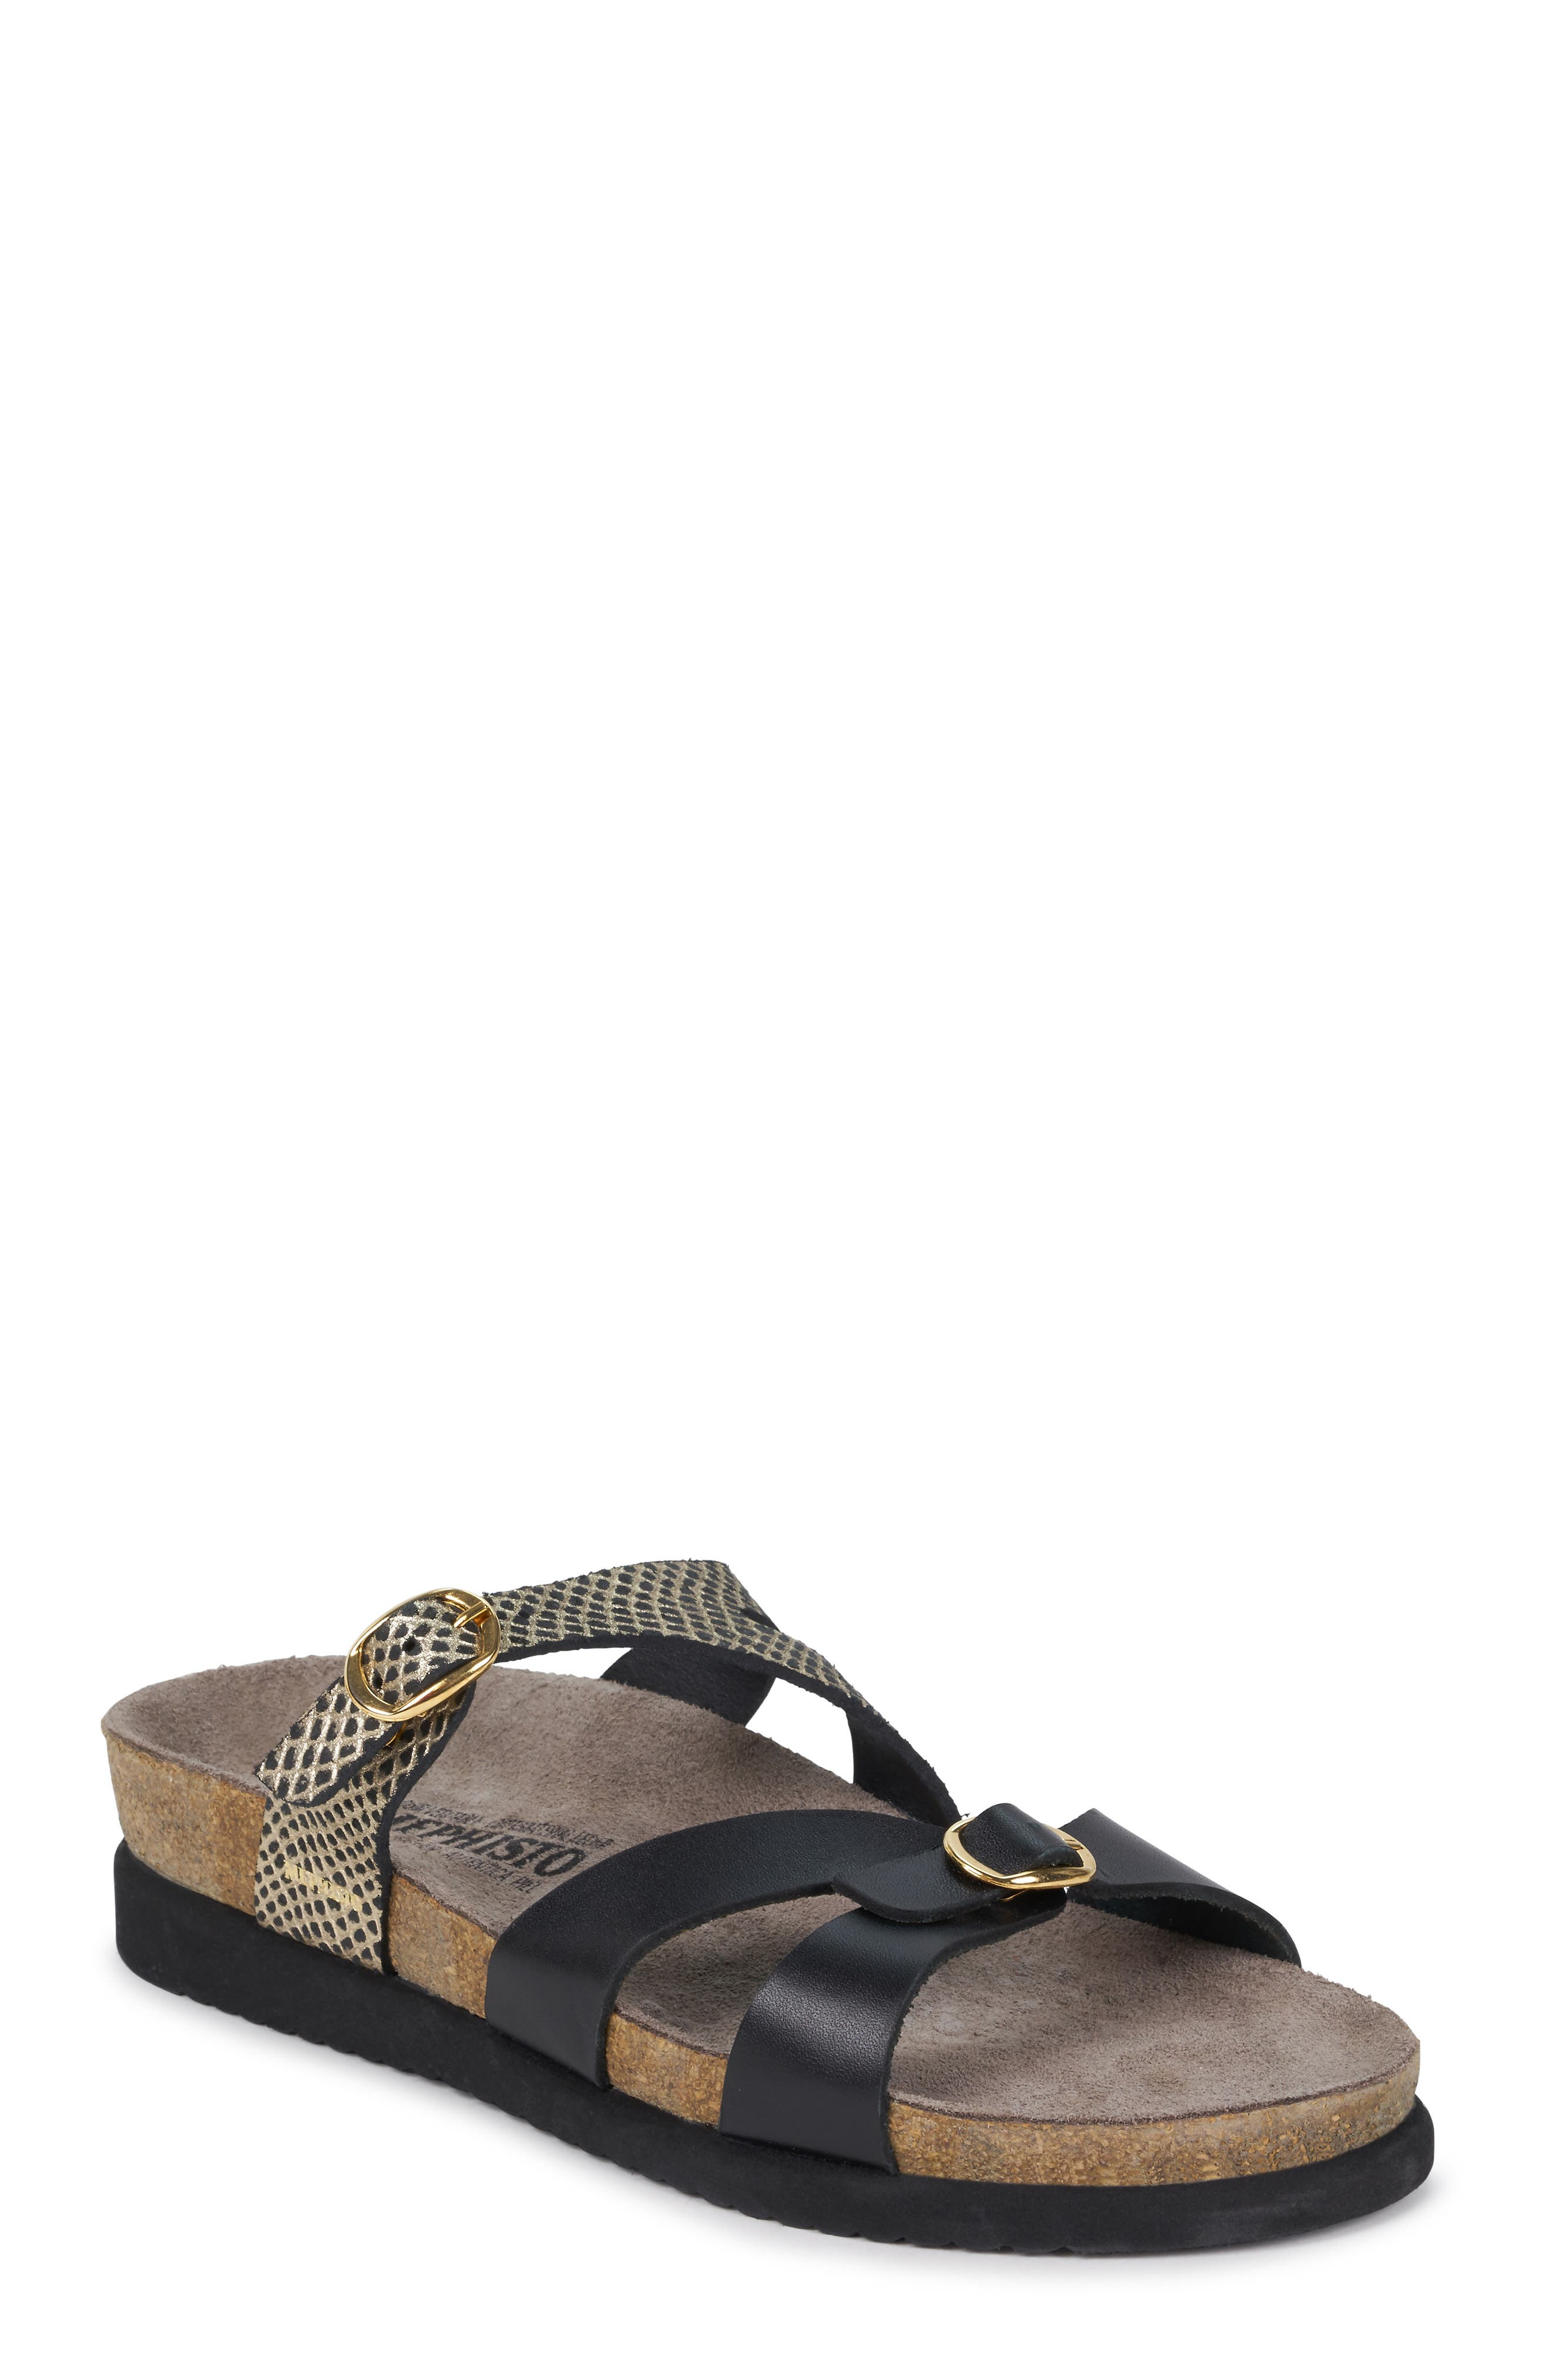 MEPHISTO 'Hannel' Sandal, Main, color, BLACK CUBA WAXY LEATHER